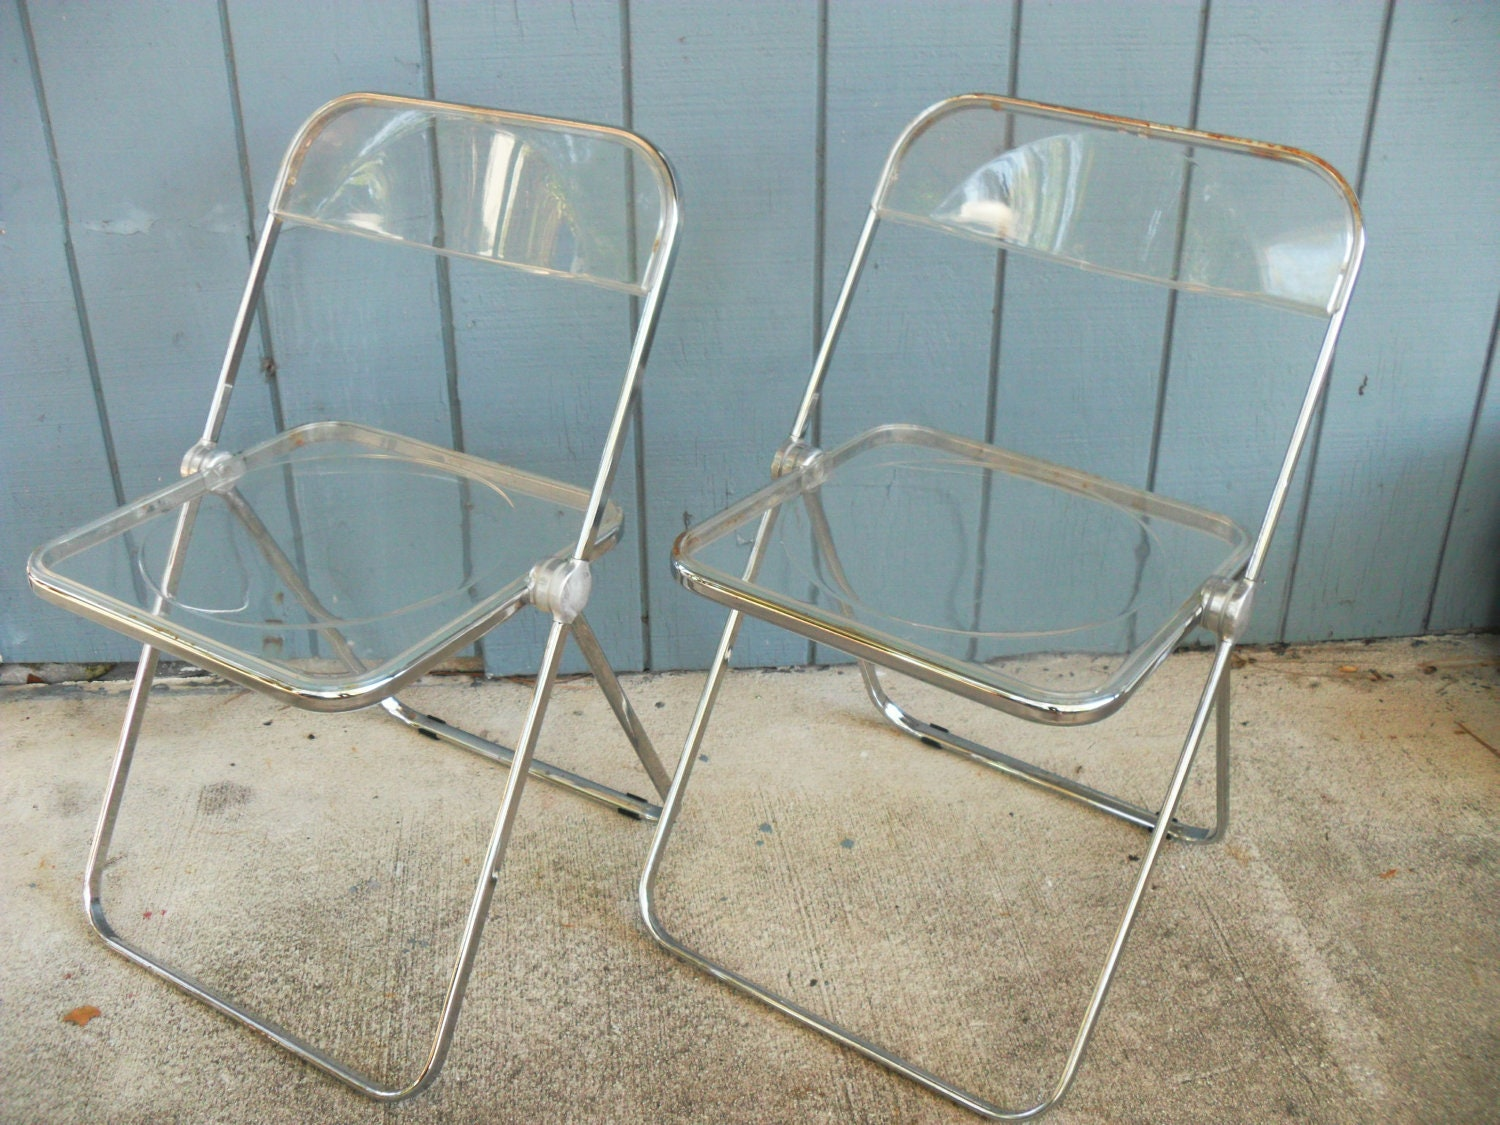 Acrylic Folding Chair 2 Plia Anonima Castelli Italy Lucite Chrome Folding  Chairs Mid